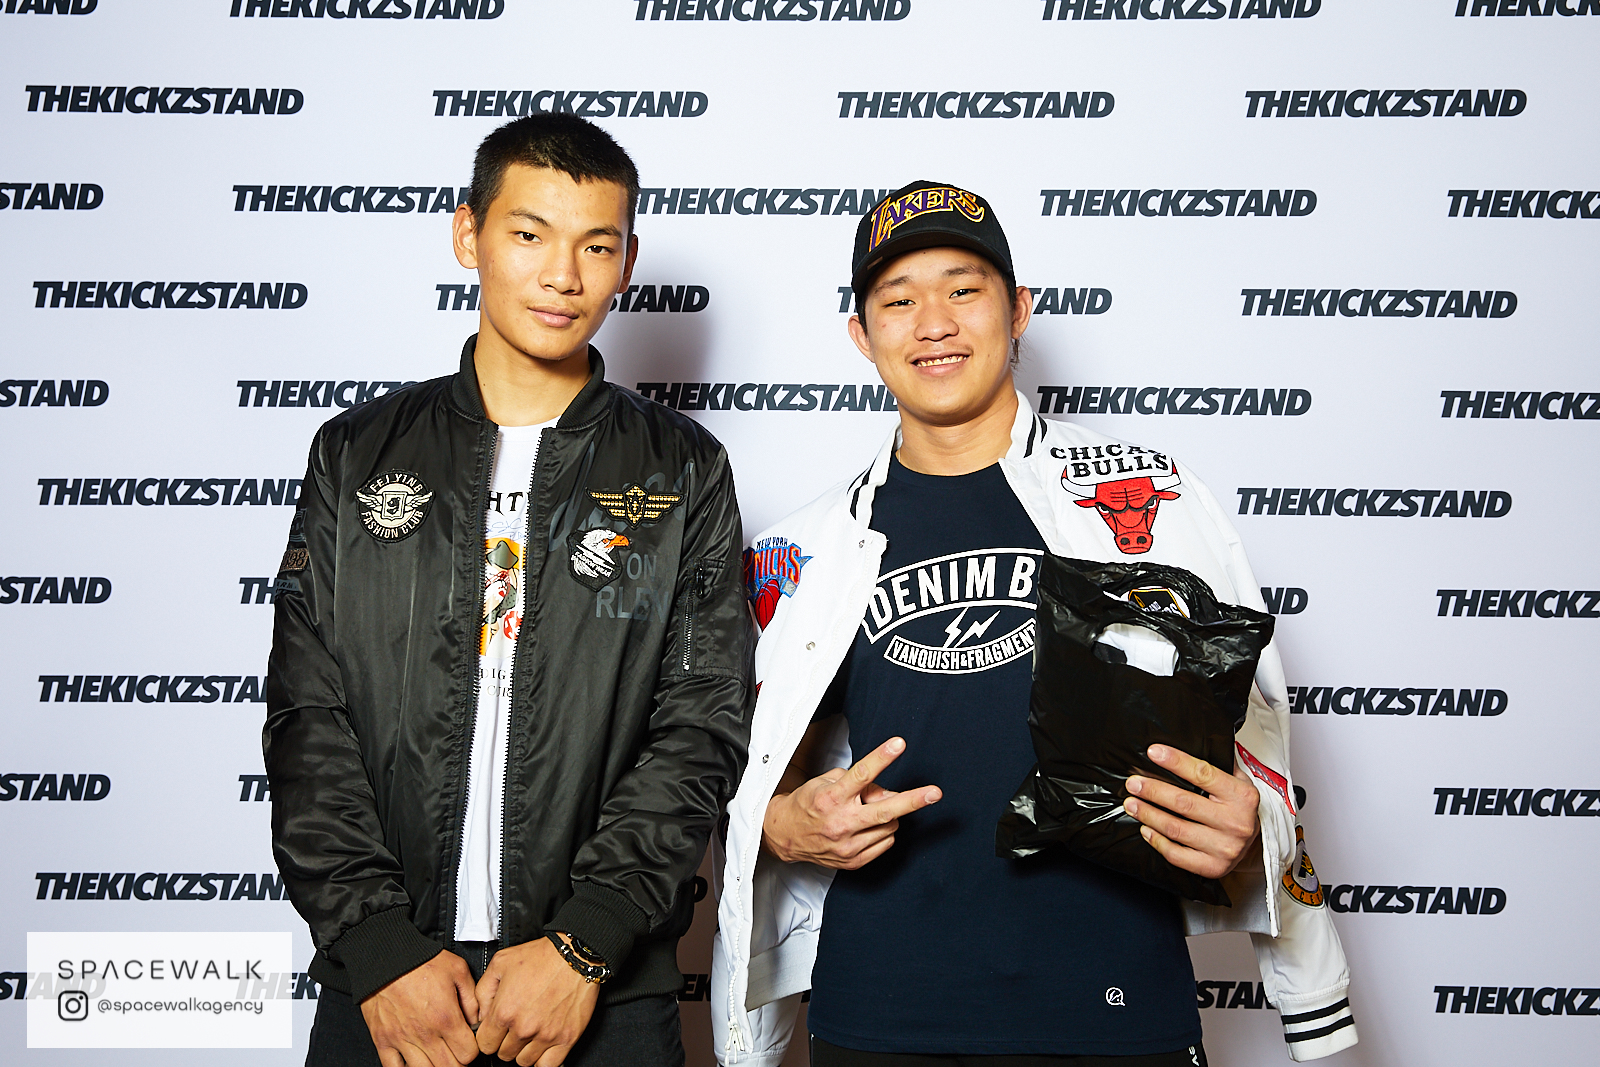 KICKZSTAND_BOOTH_033